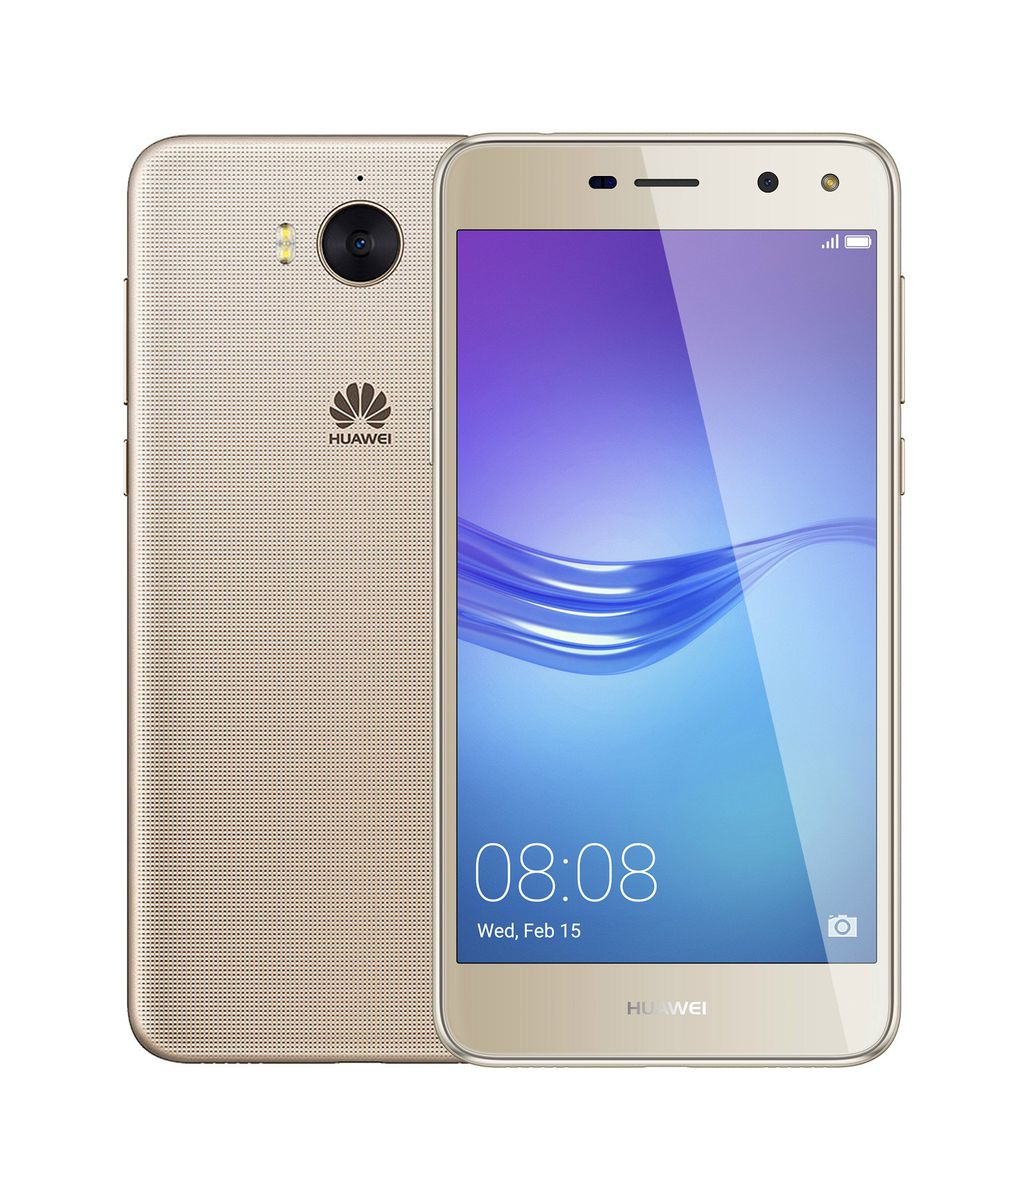 How To Unlock the Bootloader Of Huawei Y5 (2017) [Guides]